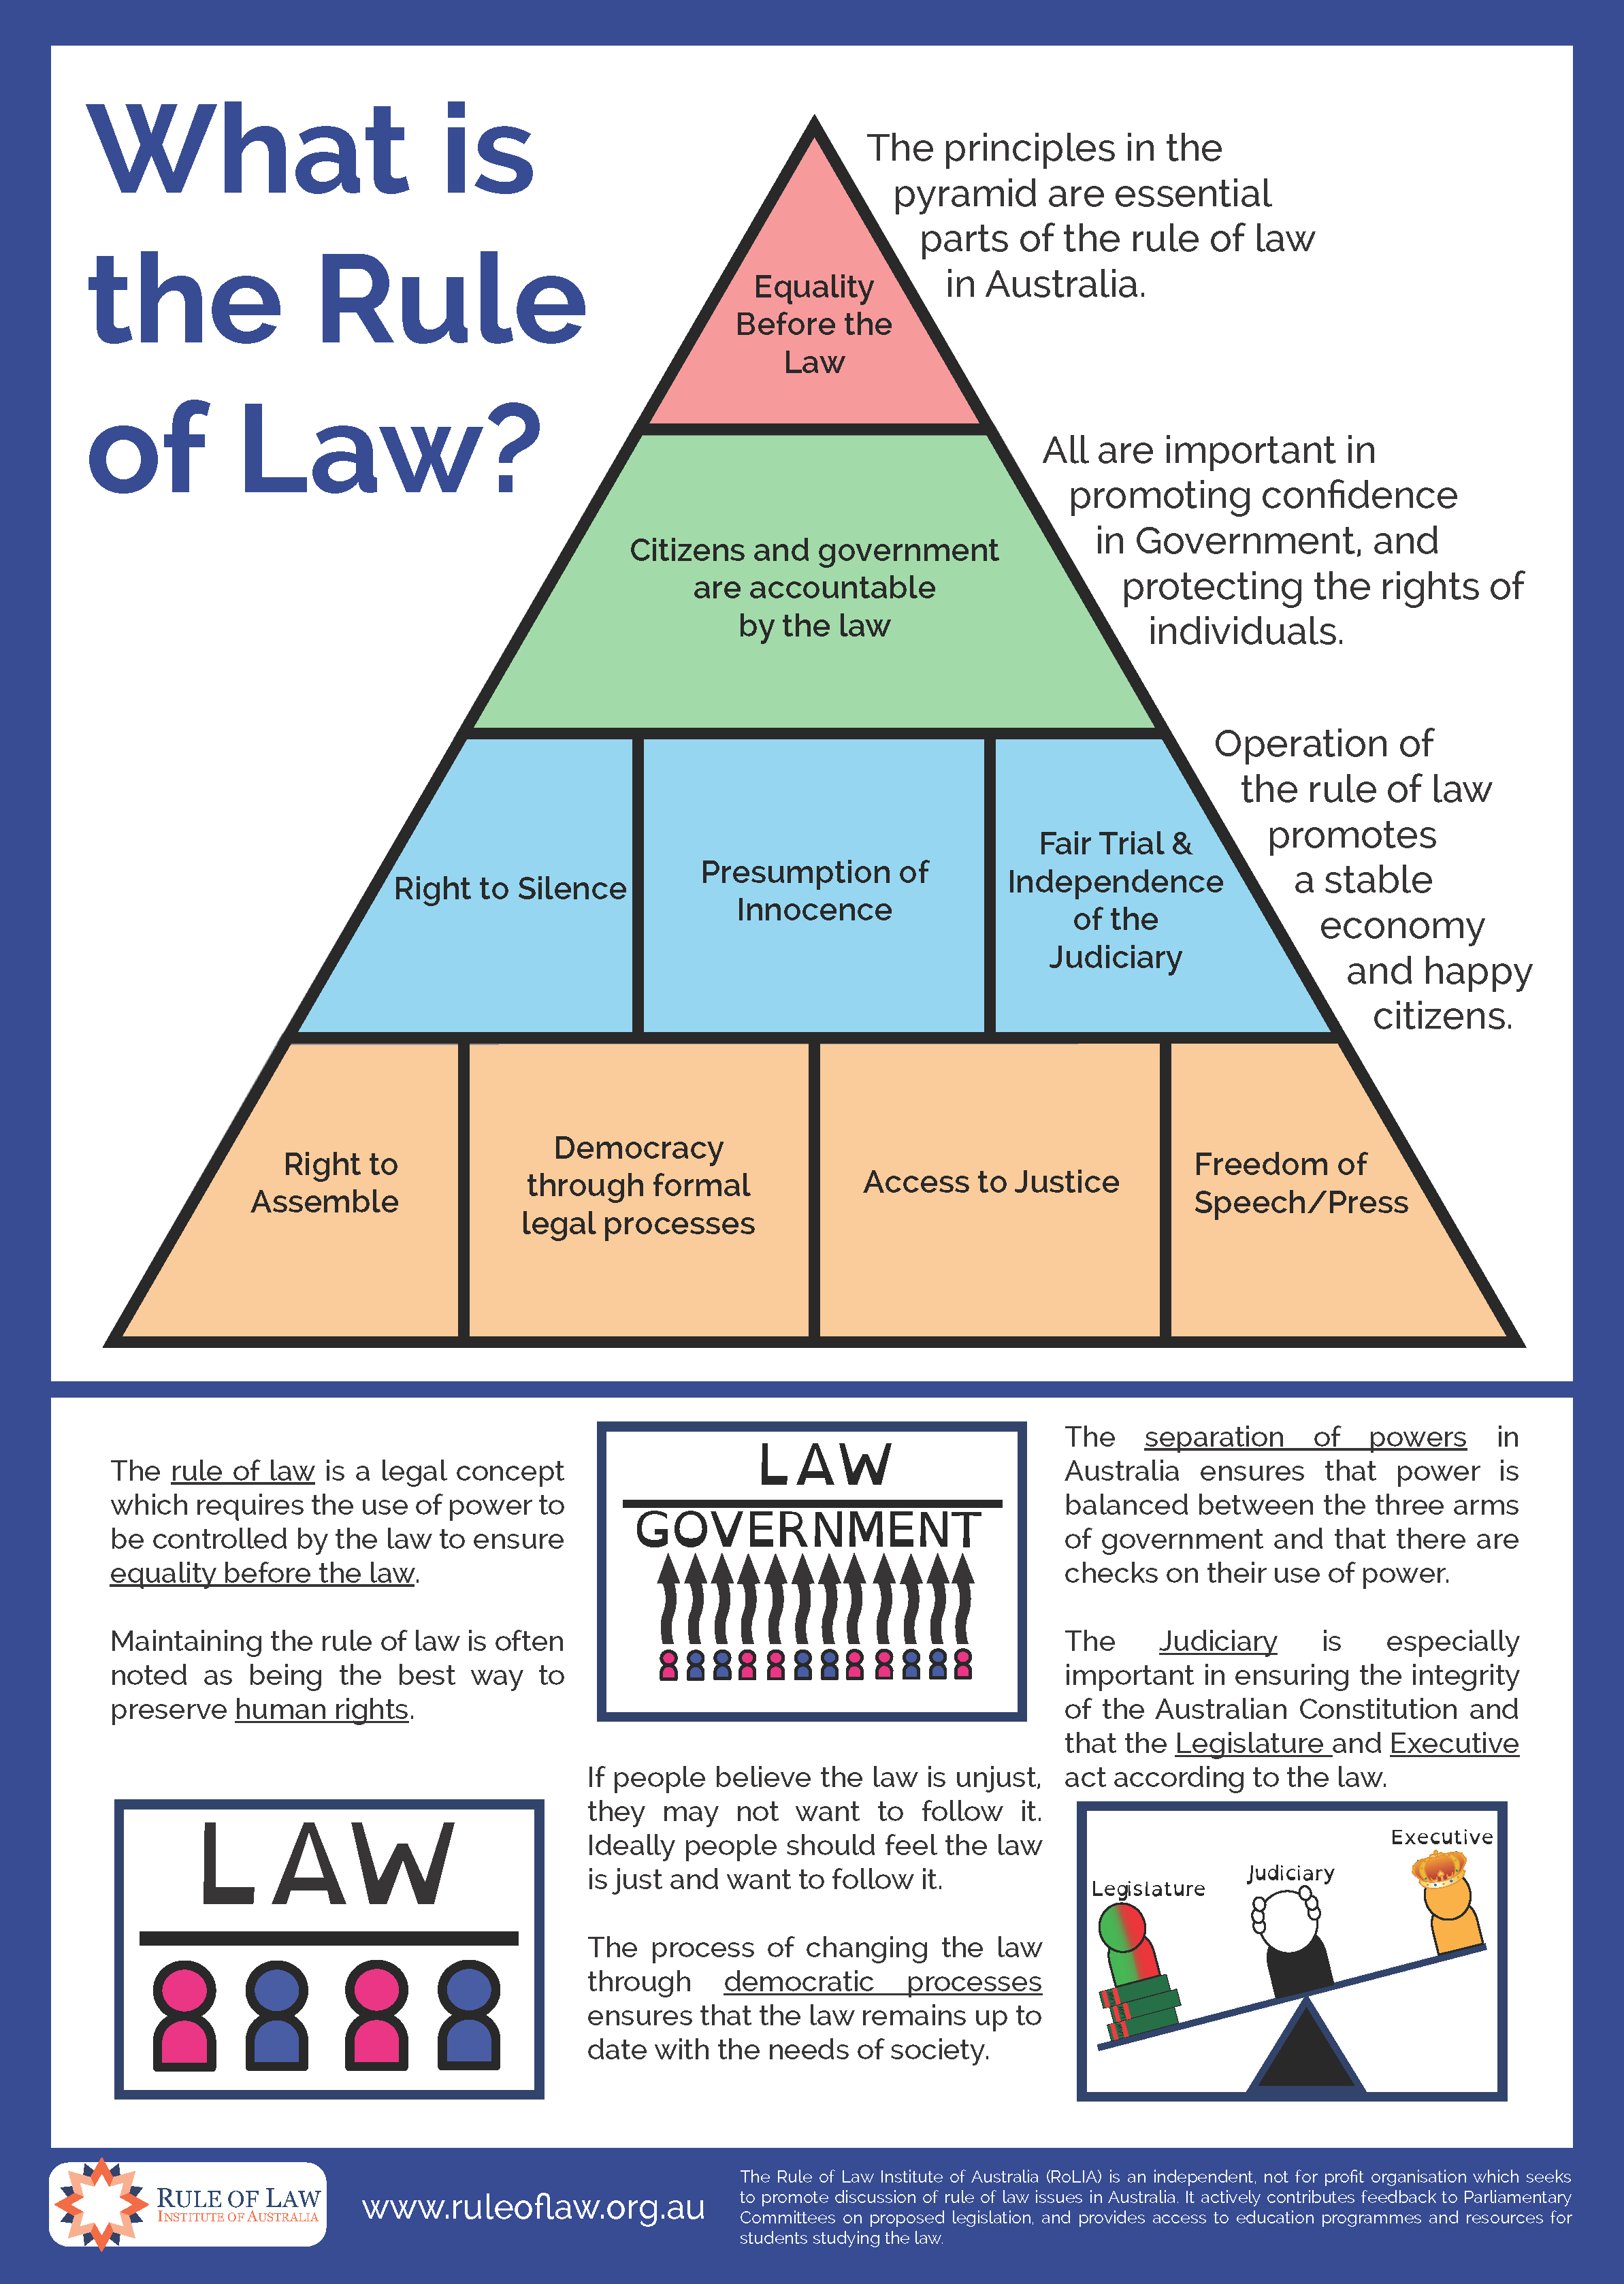 law in australian society Law is used by the commonwealth, state and territory governments to exercise unlimited power over members of society to control behaviour and prevent disputes c law is the means by which the democratically elected commonwealth parliament represents the will of australian society d.